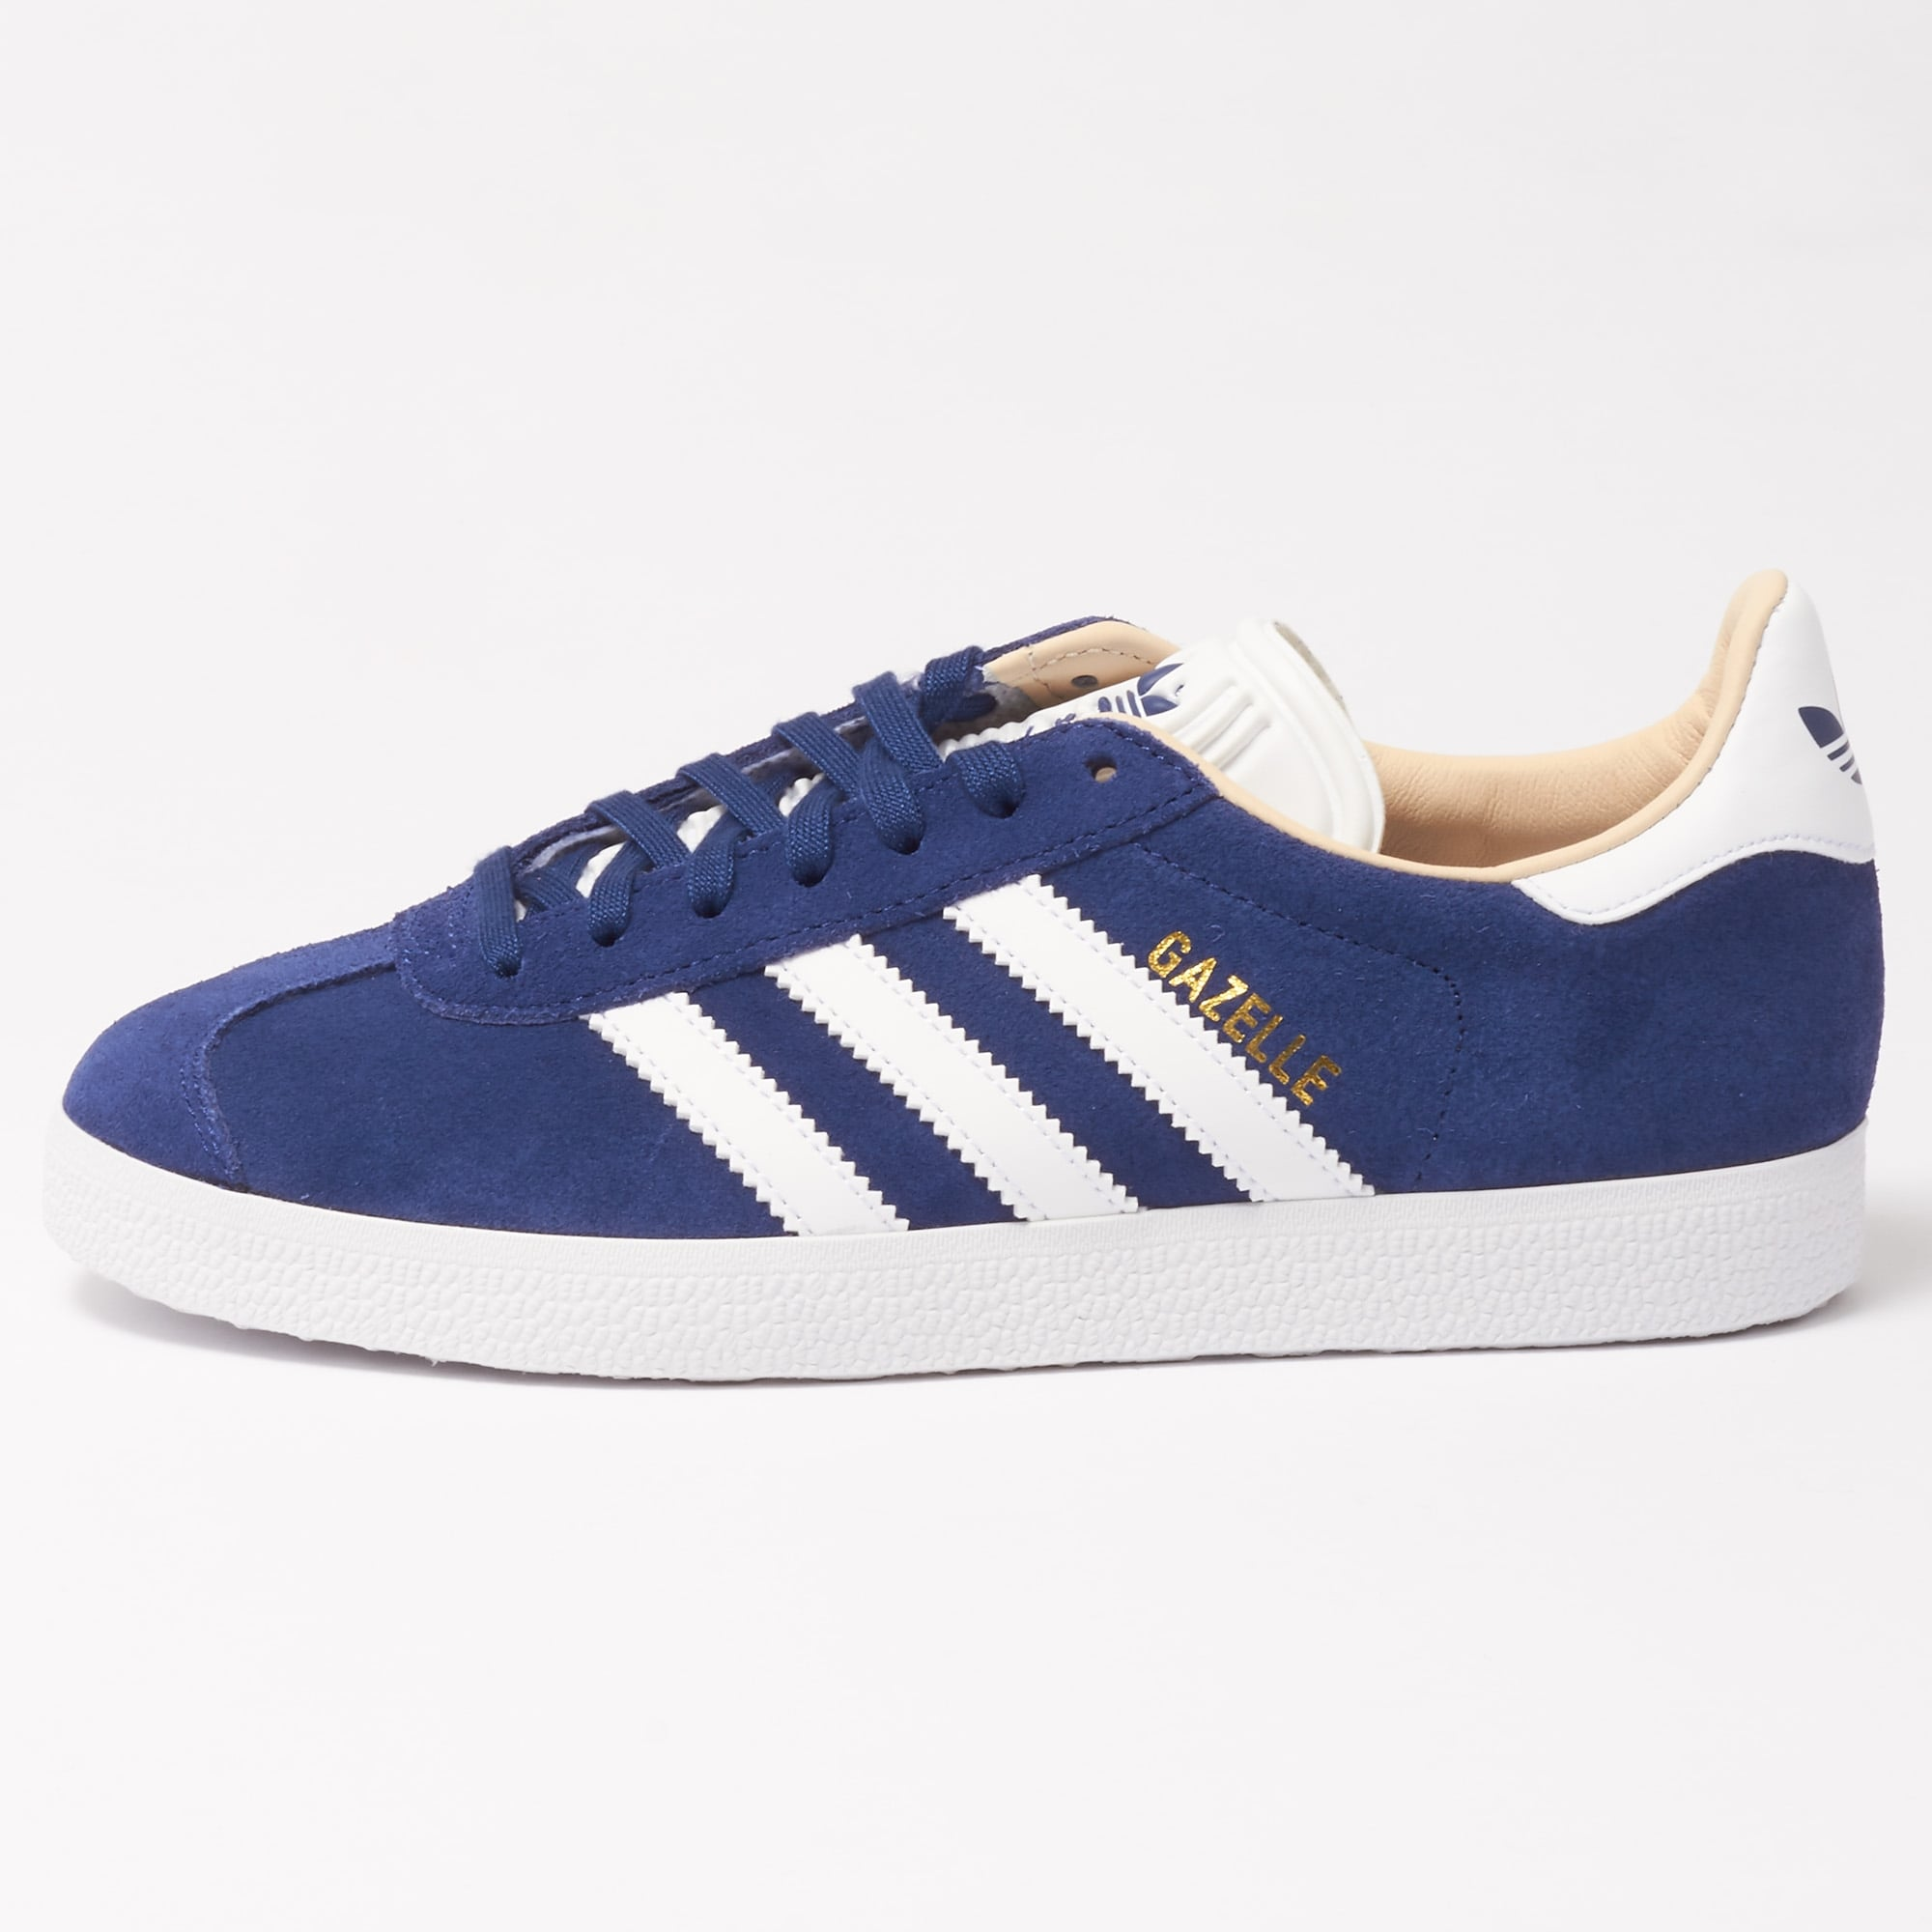 adidas gazelle womens black friday nz